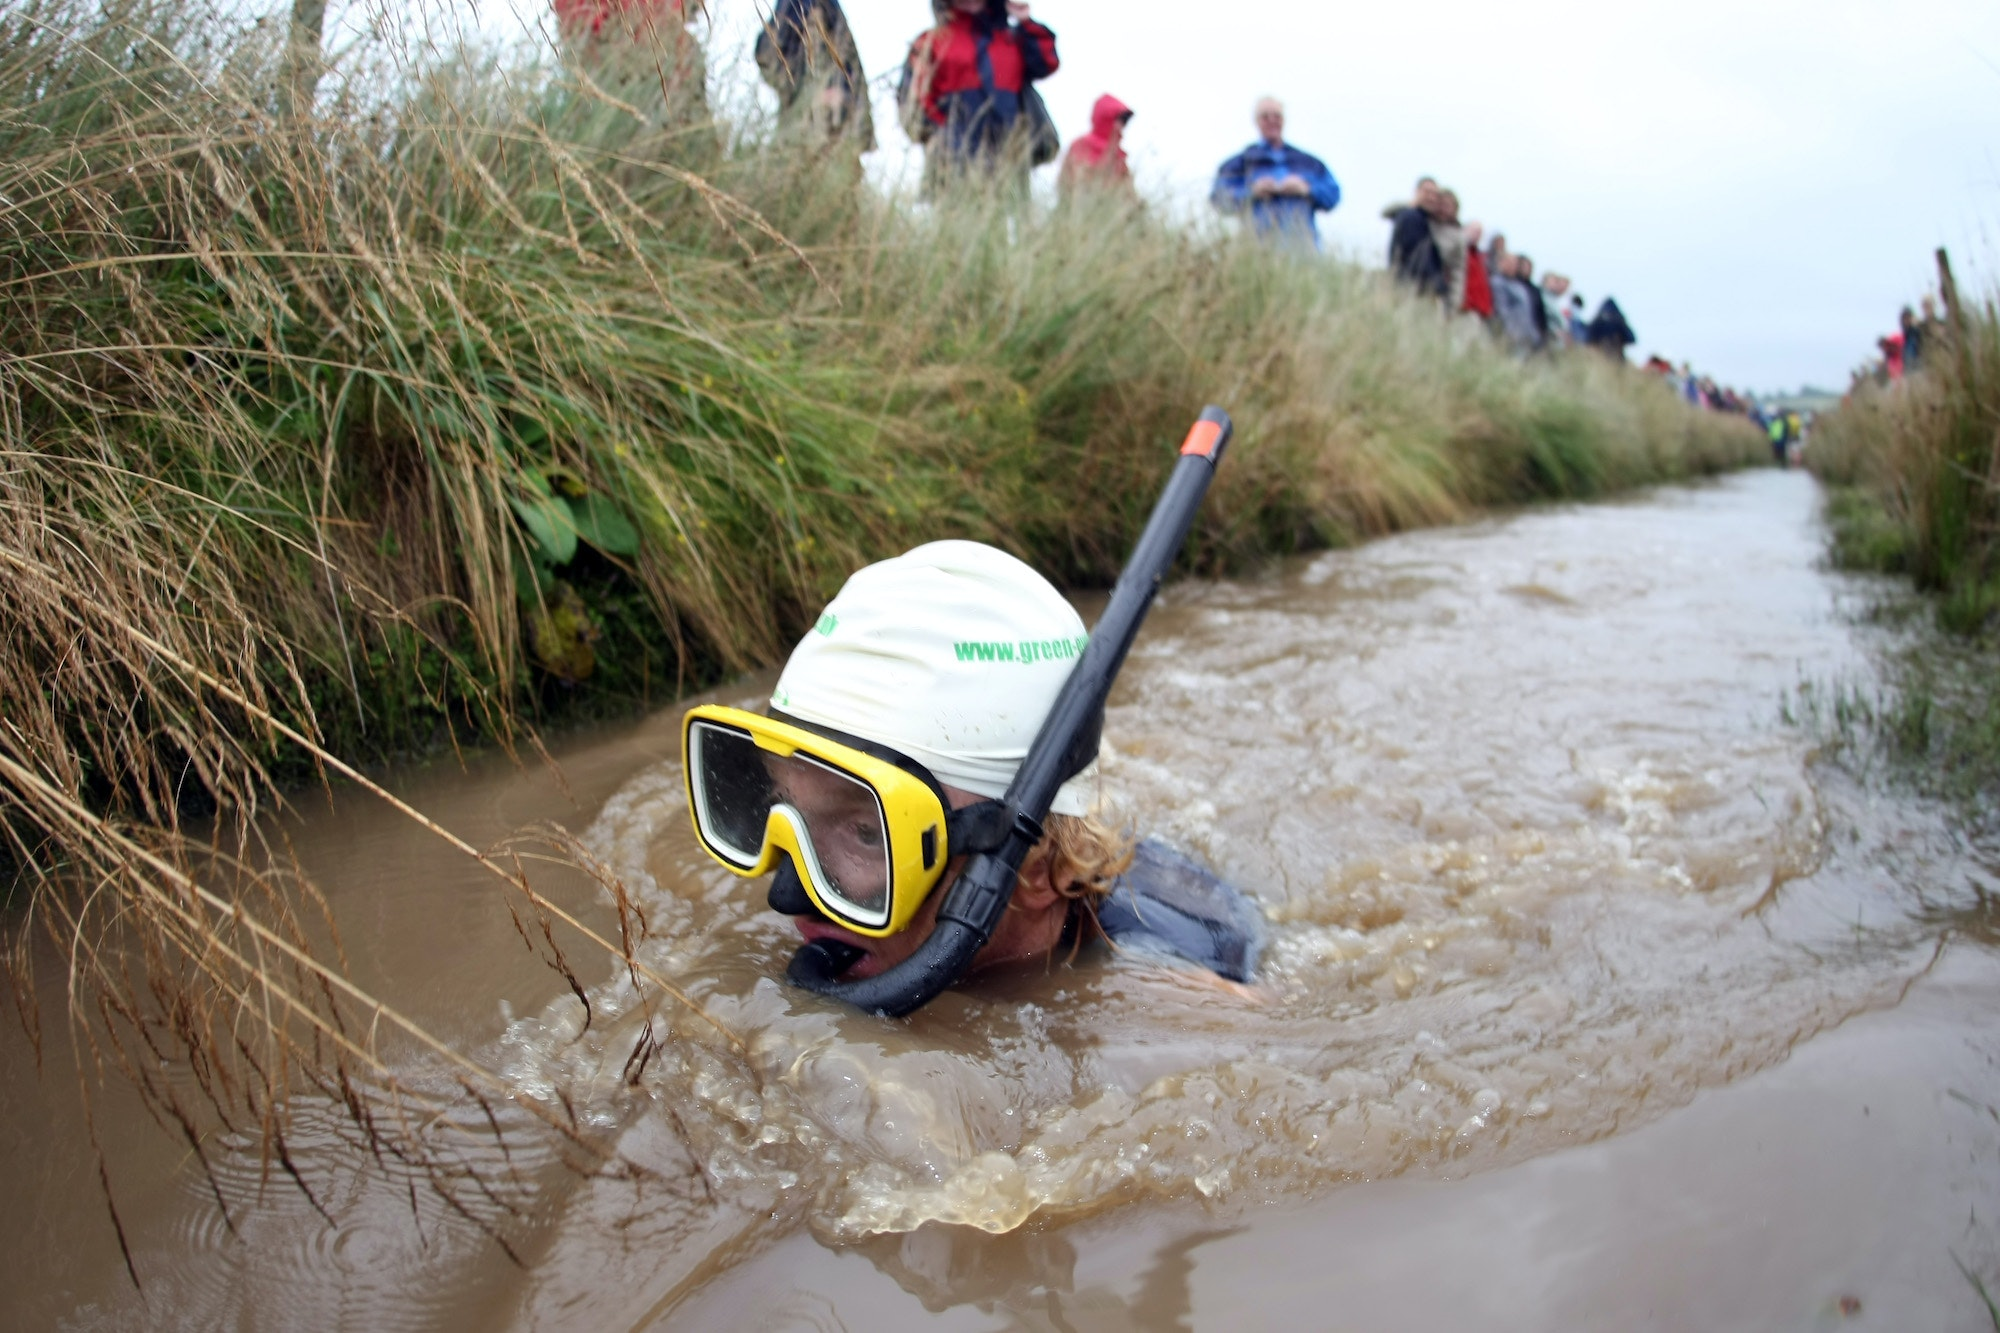 A competitor makes his way through the Waen Rhydd bog in Llanwrtyd Wells, Wales.